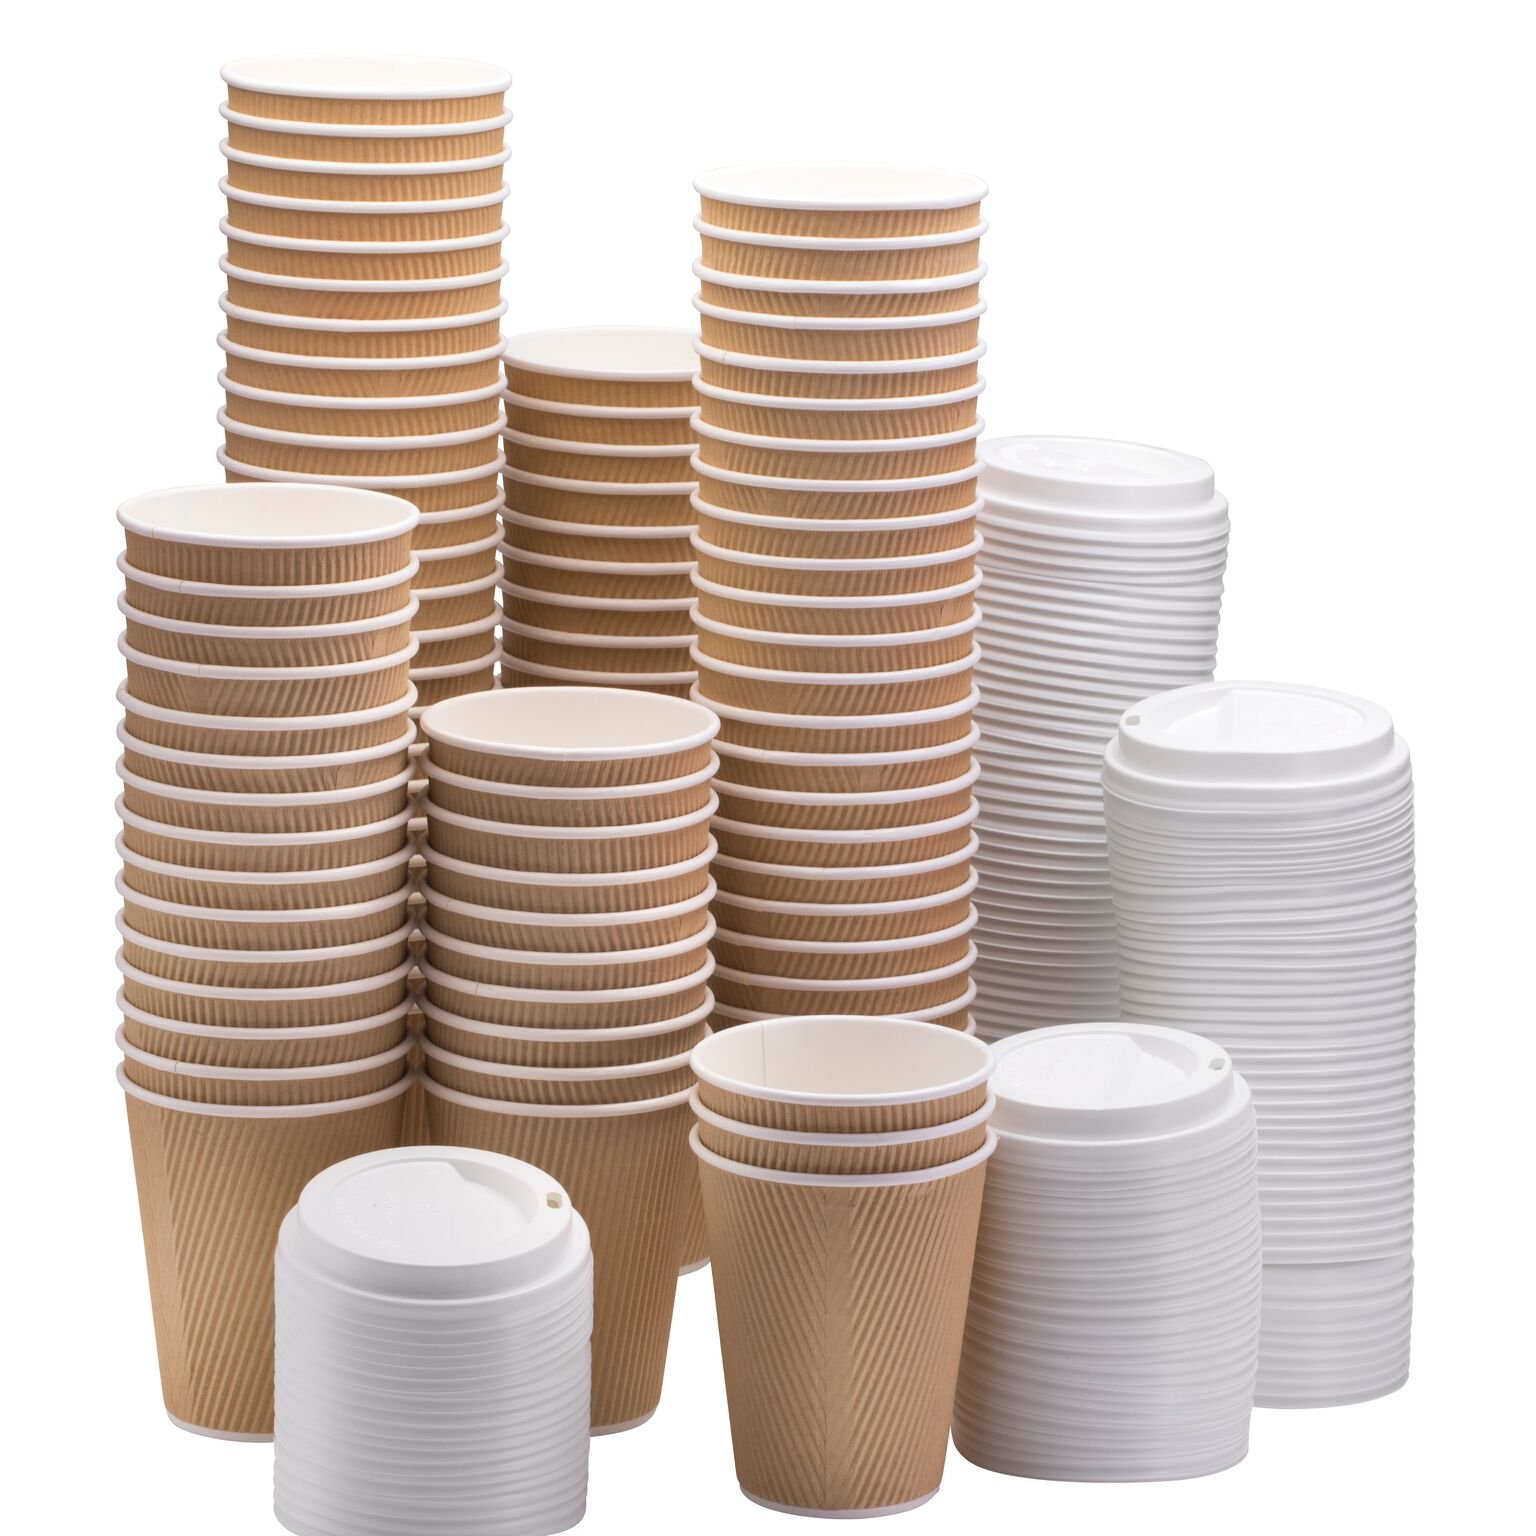 NYHI Set of 100 Brown Disposable Paper Cups with White Lids (10-oz) | Ripple Insulated Kraft for Hot Drinks - Tea & Coffee | Triple Layer Design | Eco- Friendly, Recyclable, Durable Paper